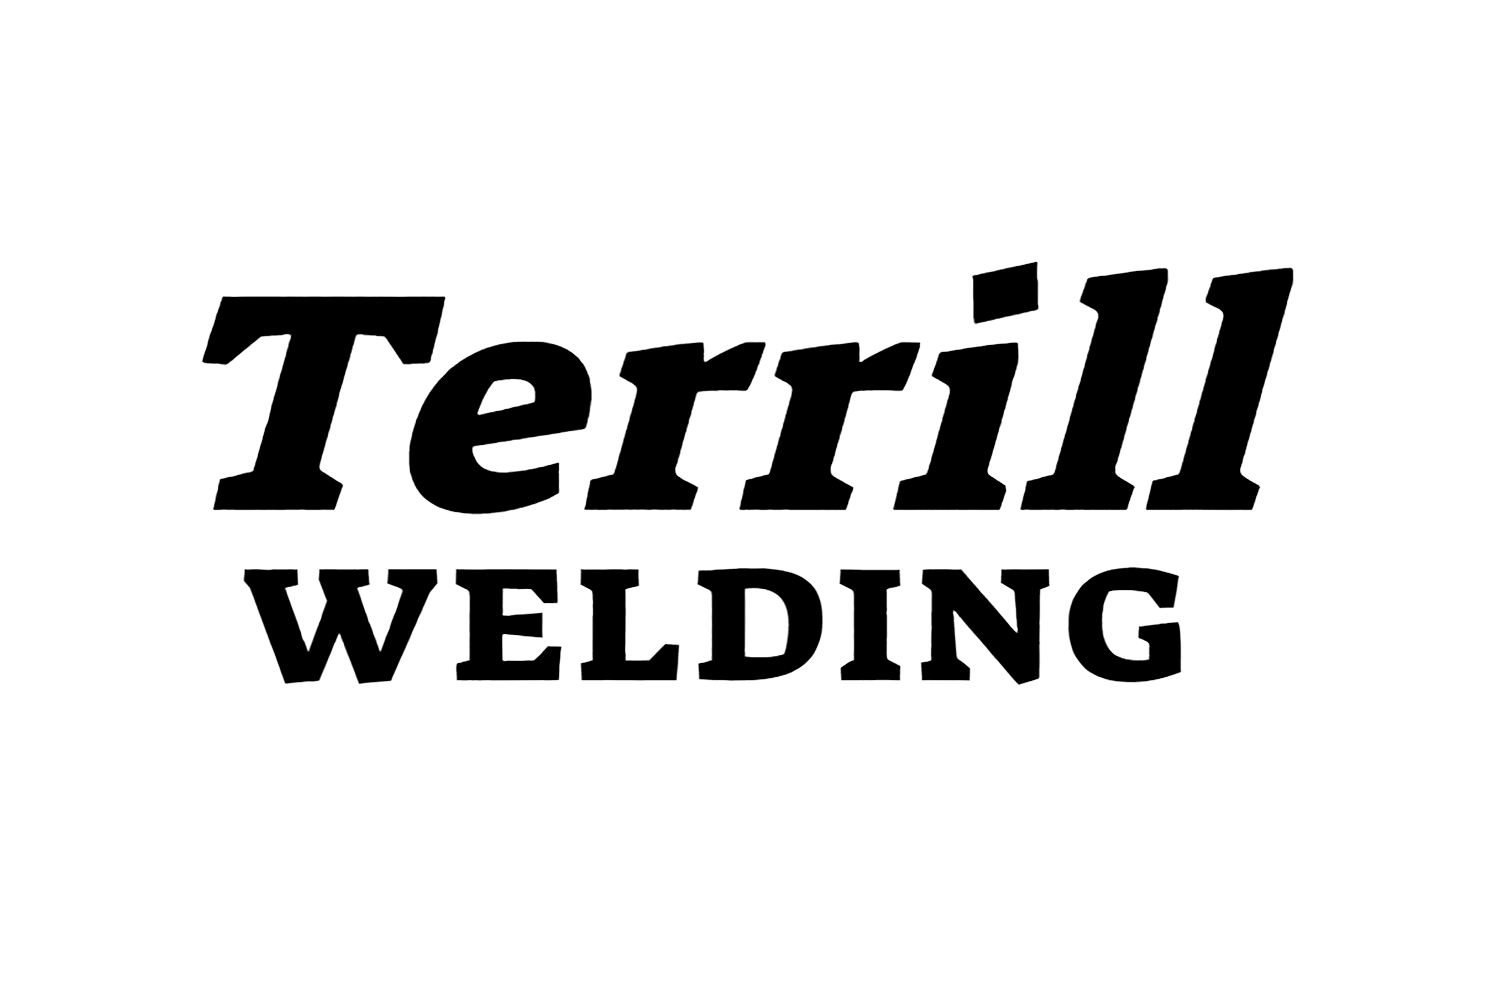 The official logo of Terrill Welding of North Benton, Ohio.